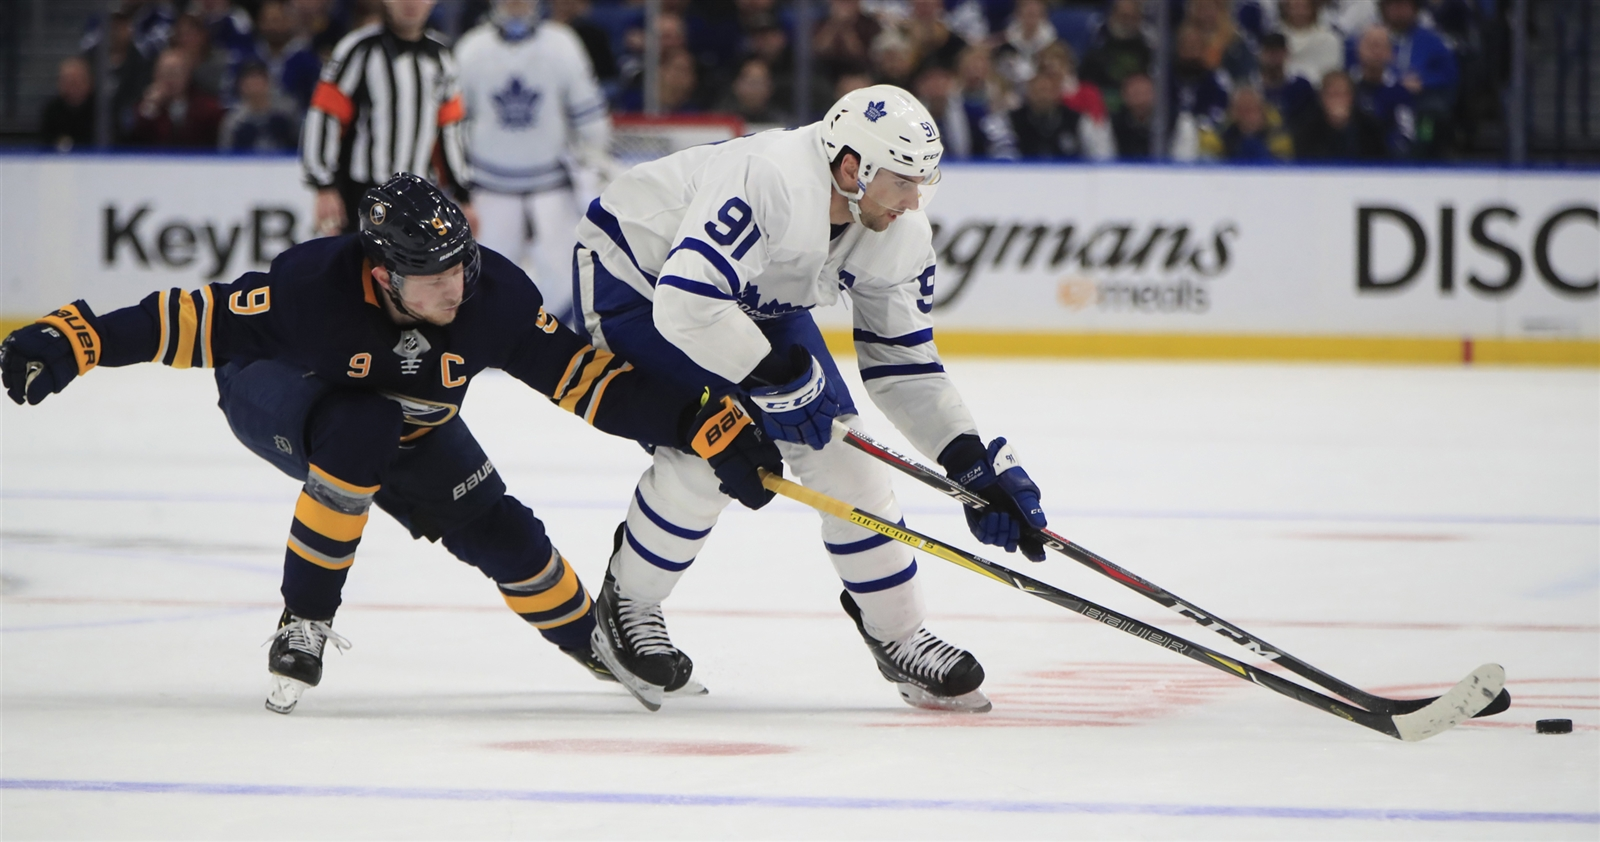 Sabres looking to wipe out a pair of ugly streaks as Leafs come to town